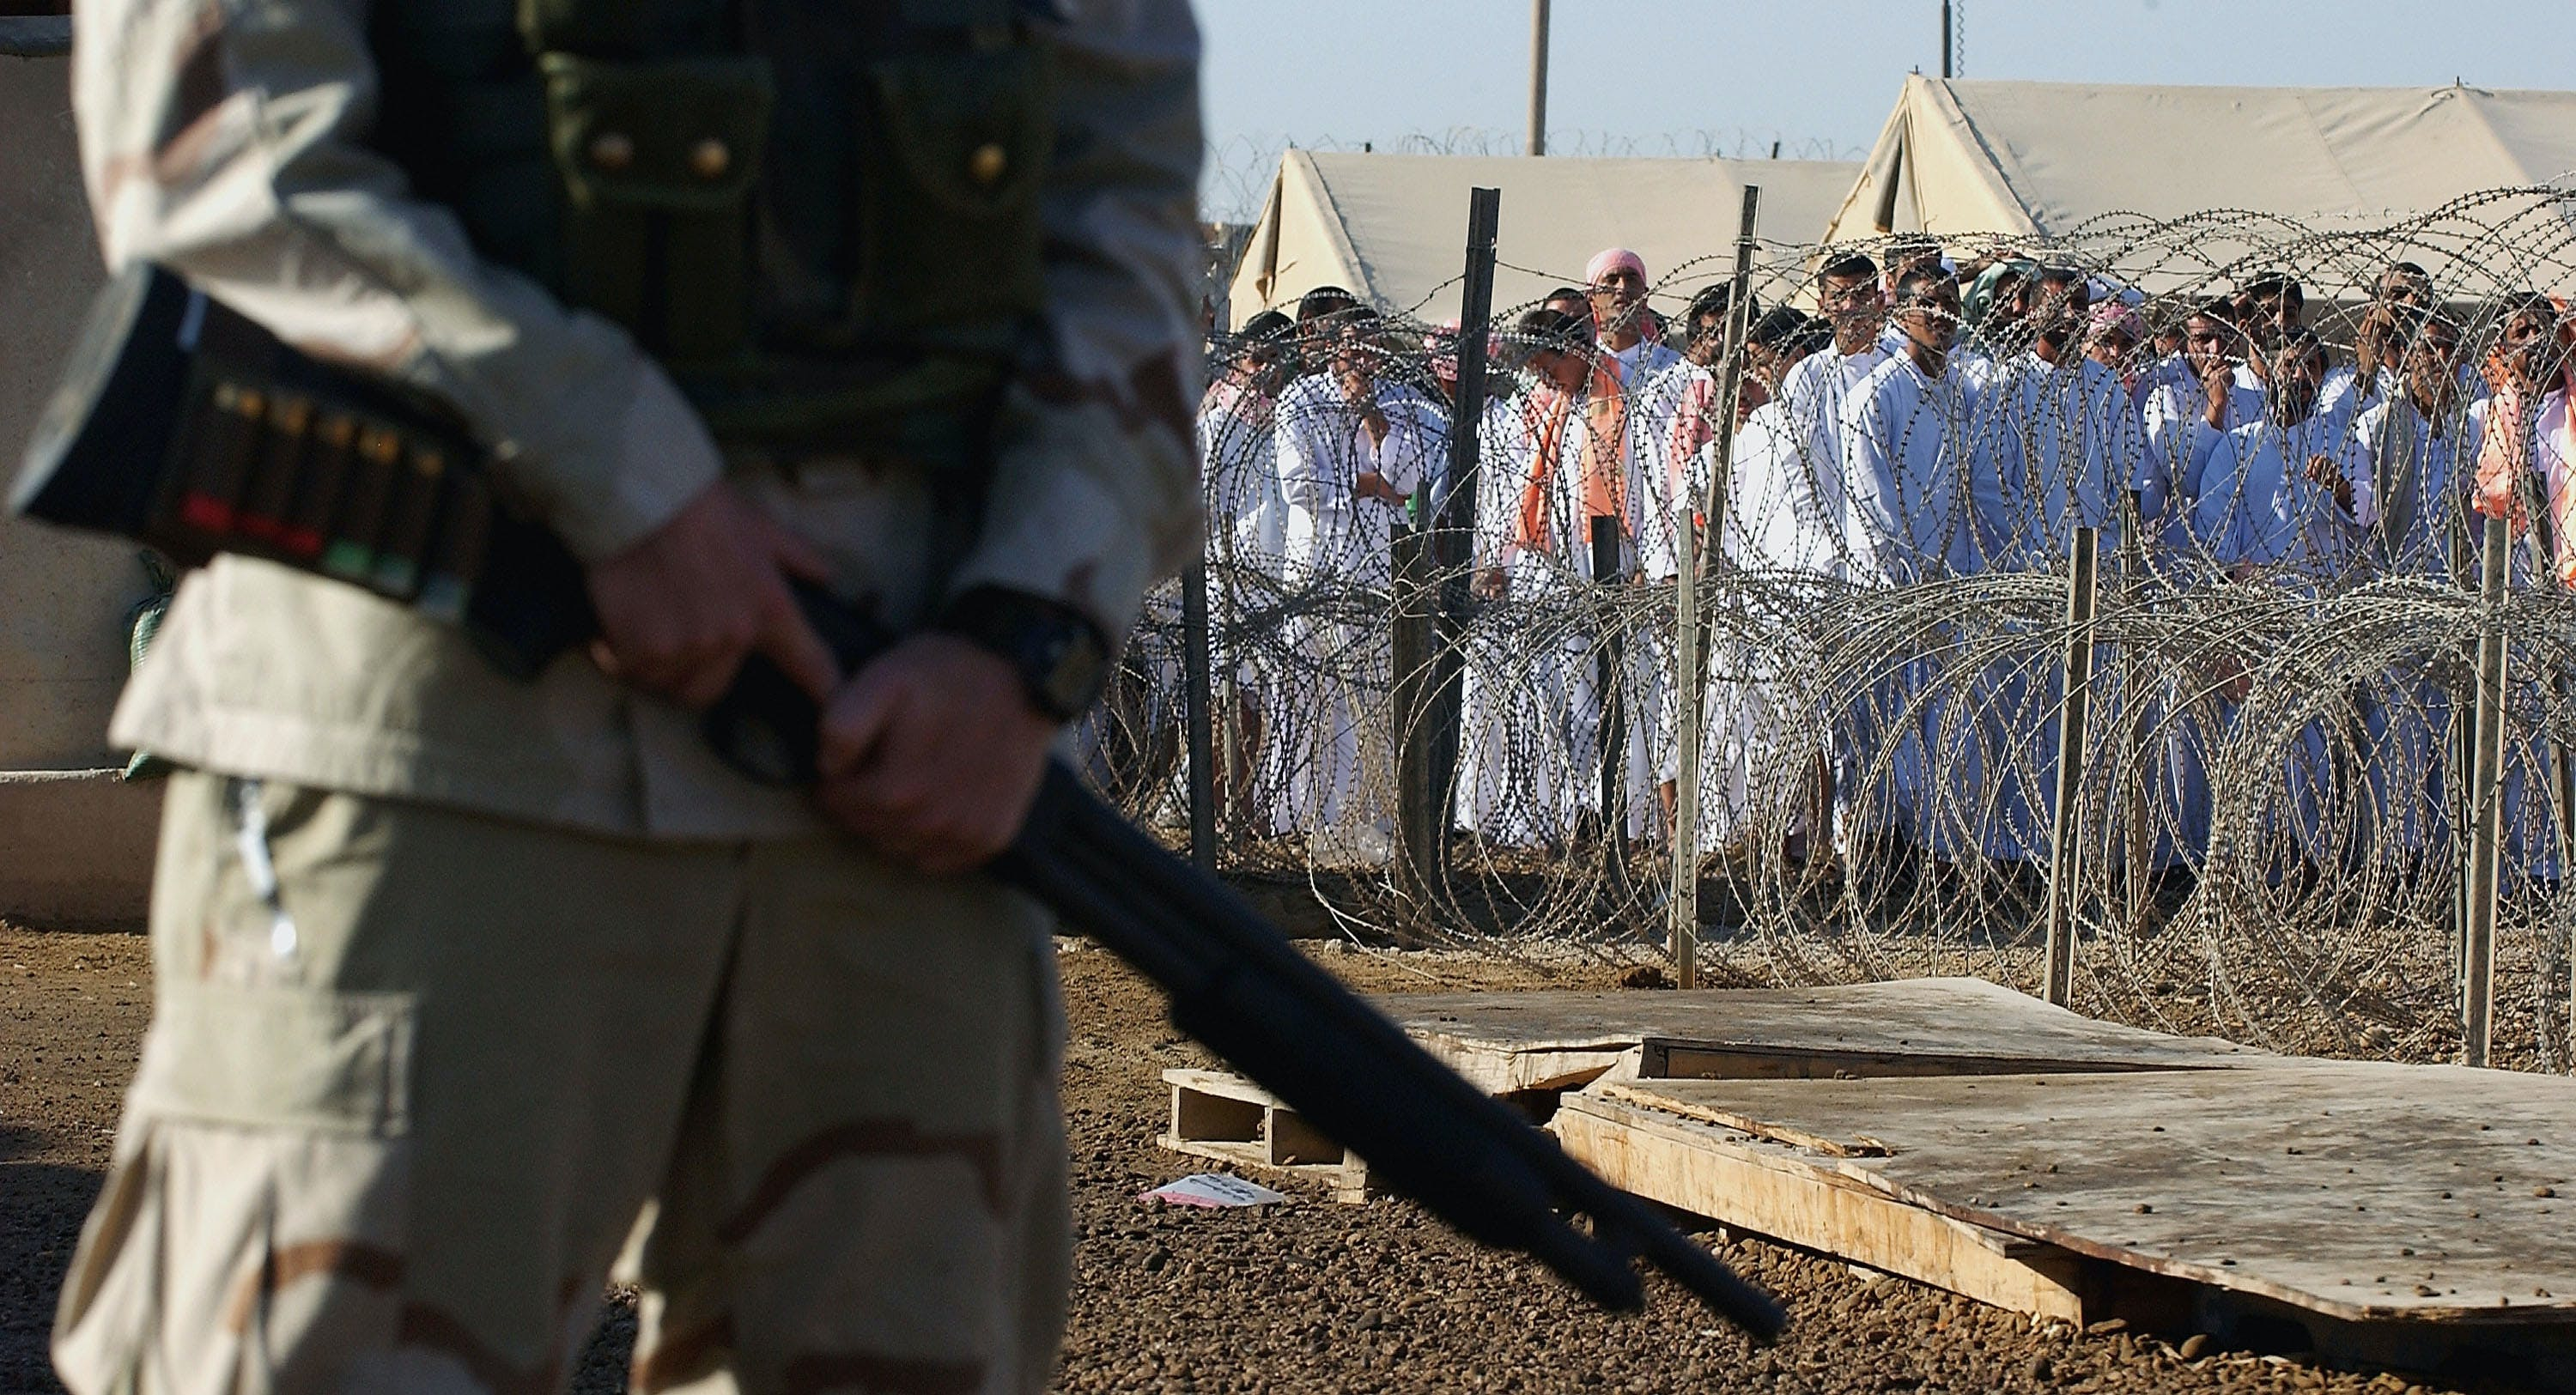 Report to U.N. Calls Bullshit on Obama's 'Look Forward, Not Backwards' Approach to Torture